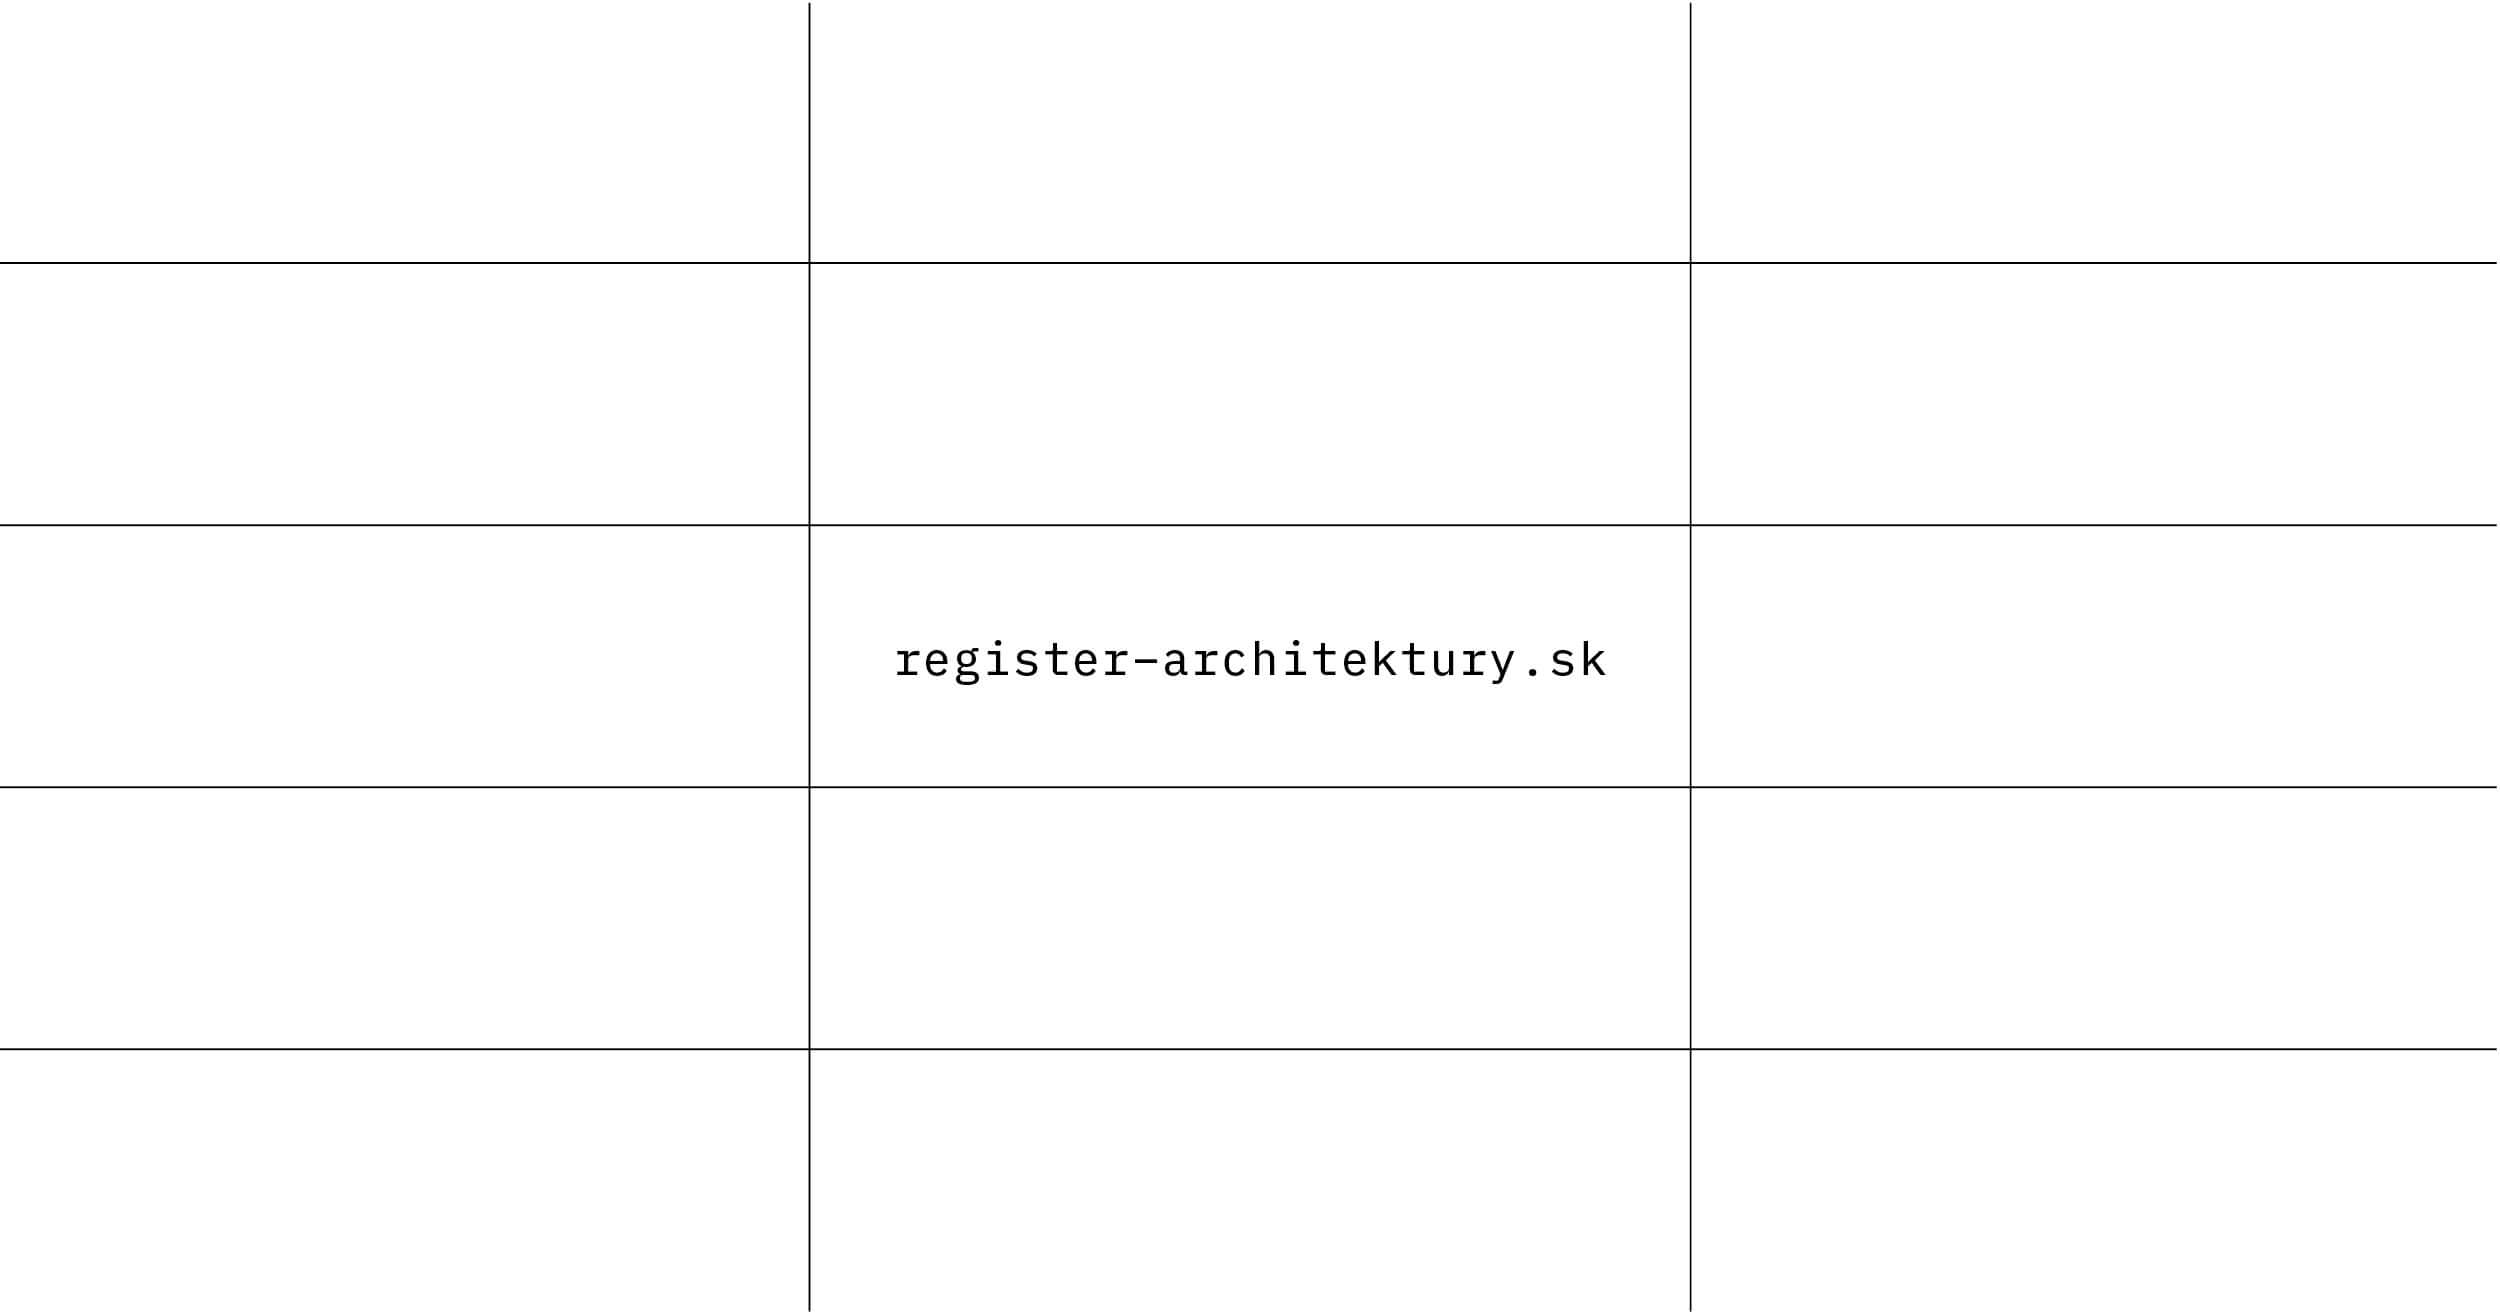 www.register-architektury.sk